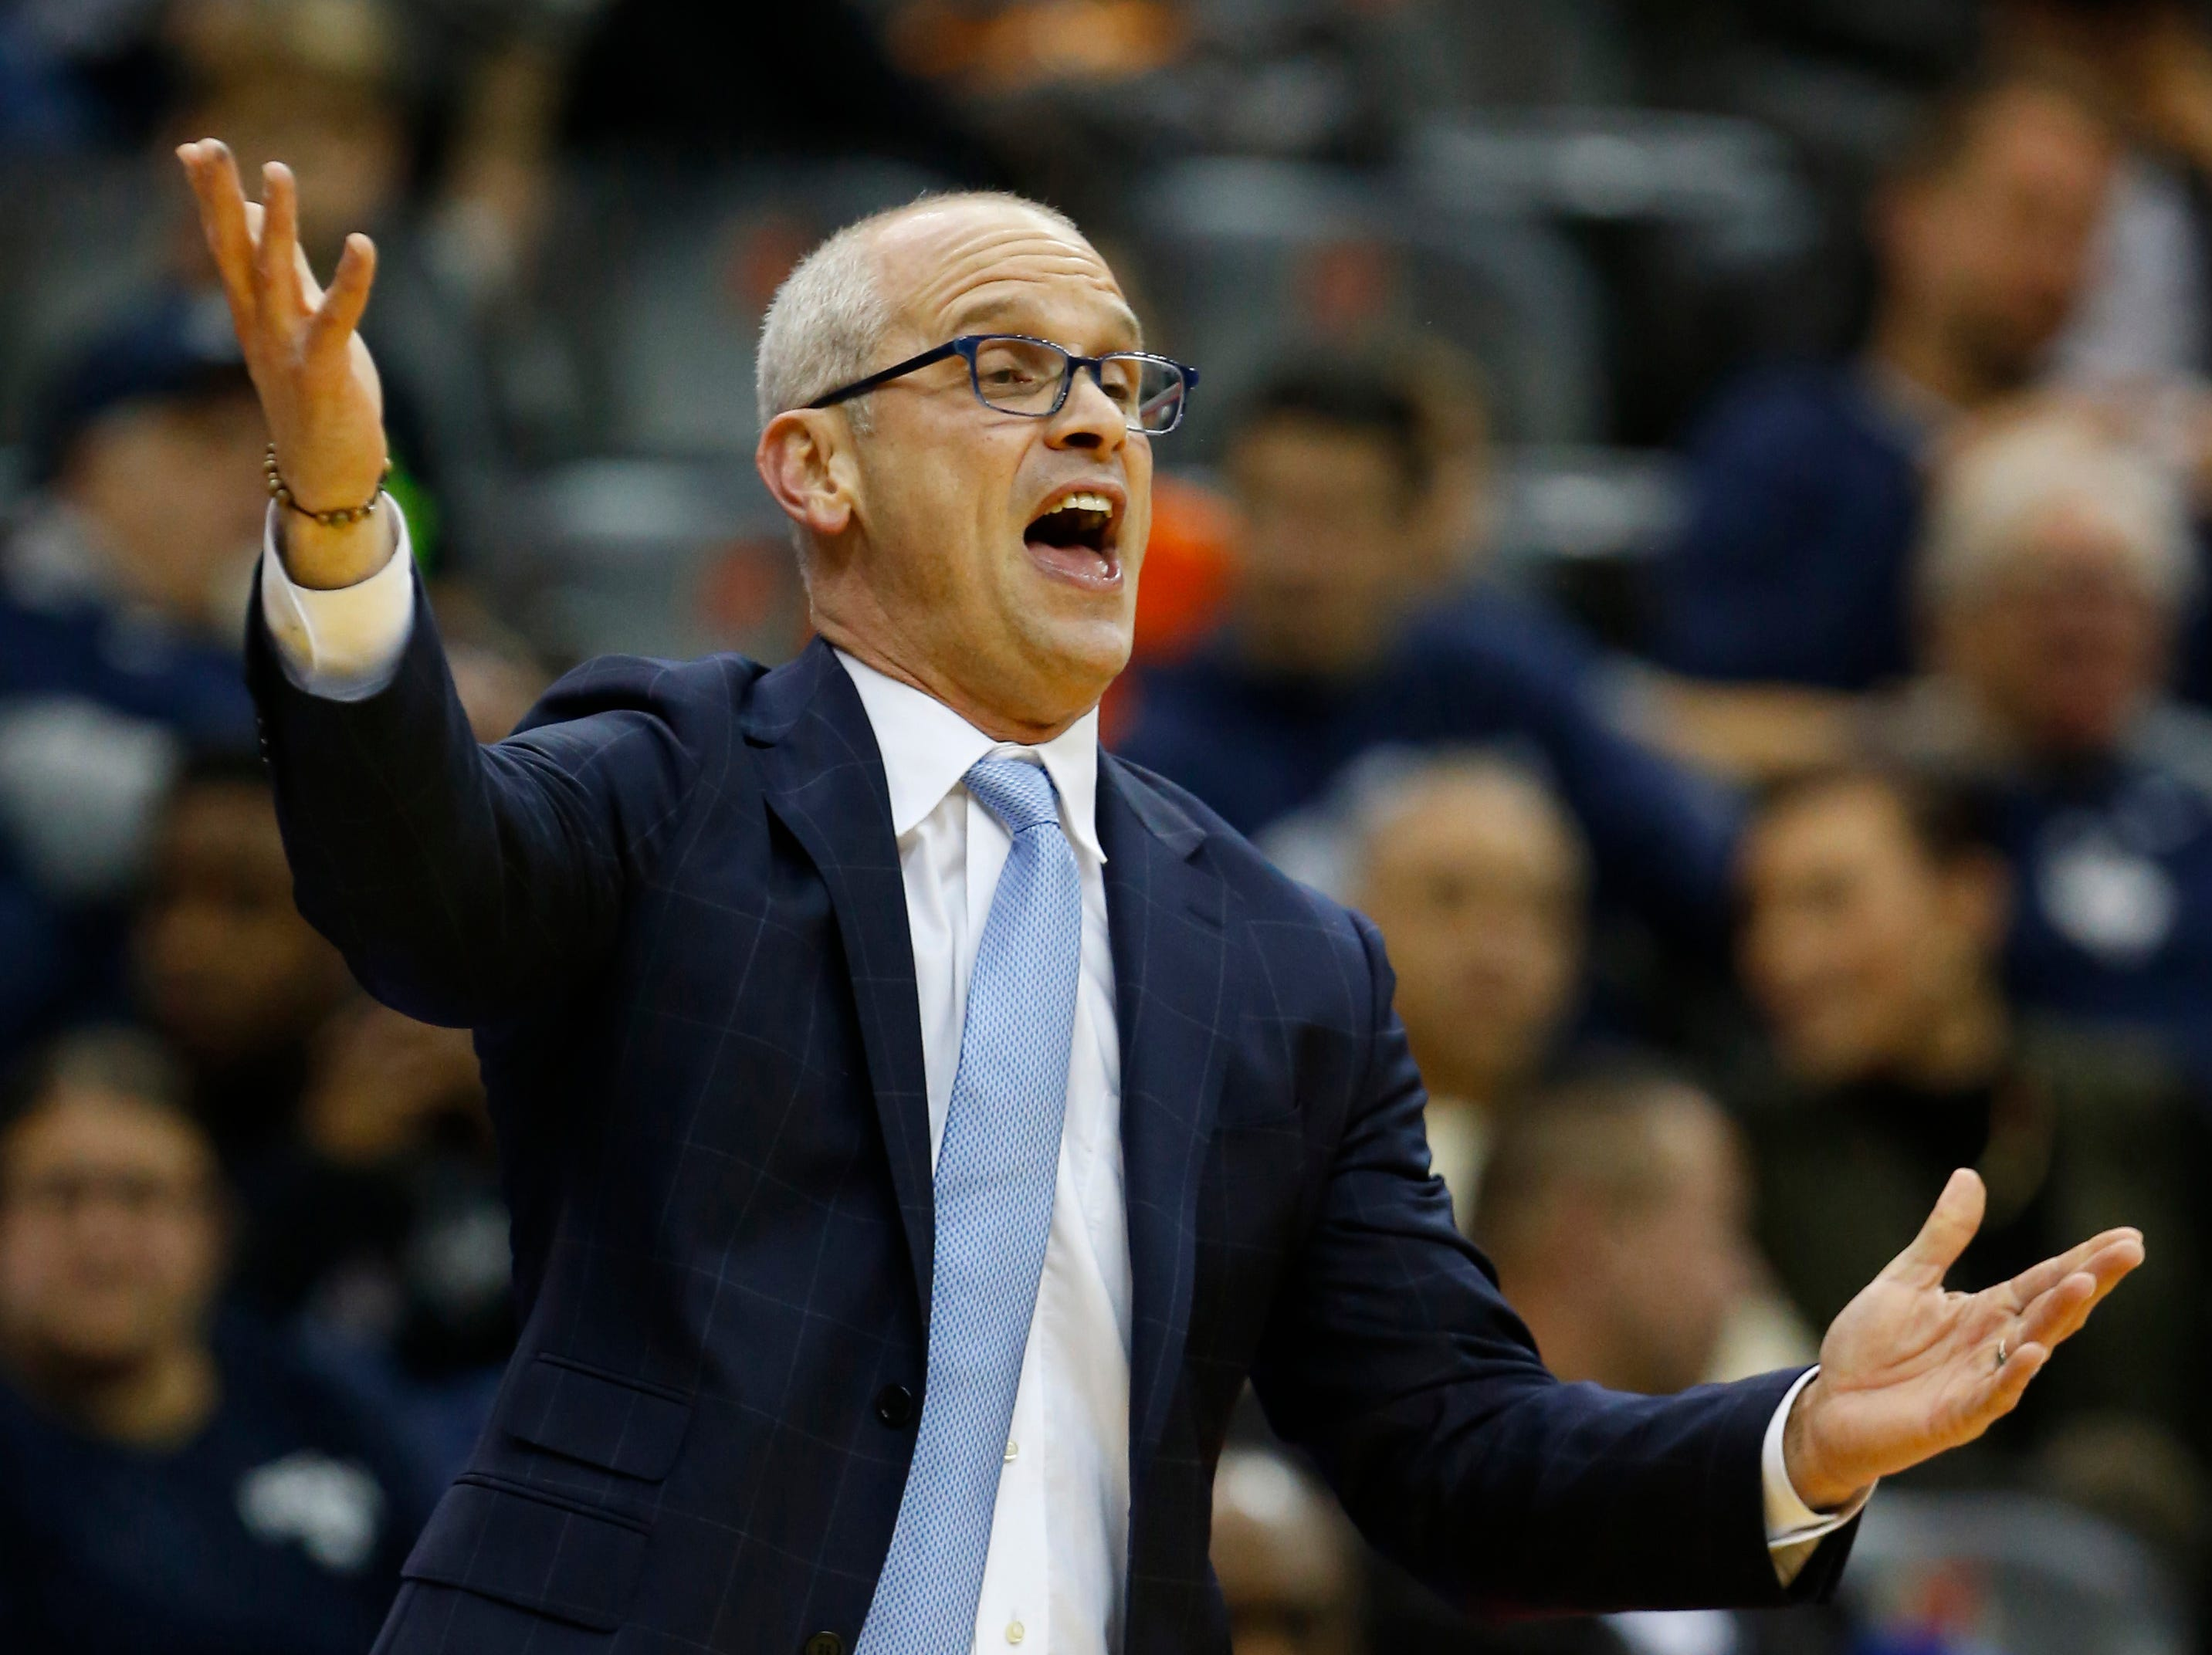 Dec 8, 2018; Newark, NJ, USA; Connecticut Huskies head coach Dan Hurley reacts to game action against the Florida State Seminoles during the first half at Prudential Center. Mandatory Credit: Noah K. Murray-USA TODAY Sports